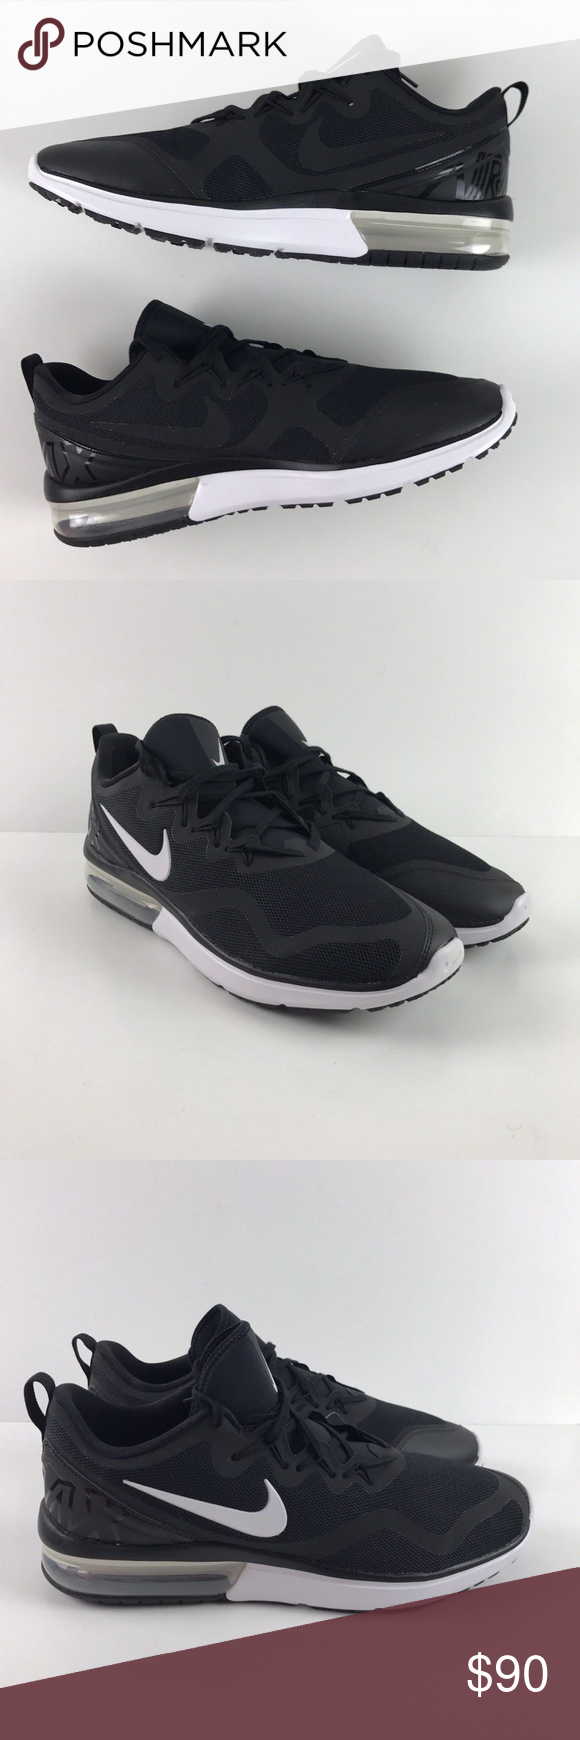 cheaper b6f86 357c1 Zapatos Deportivos · Hombres Nike · Blanco Negro · Caja · Nike Air Max Fury  AA5739-001 Black White Running Nike Air Max Fury AA5739-